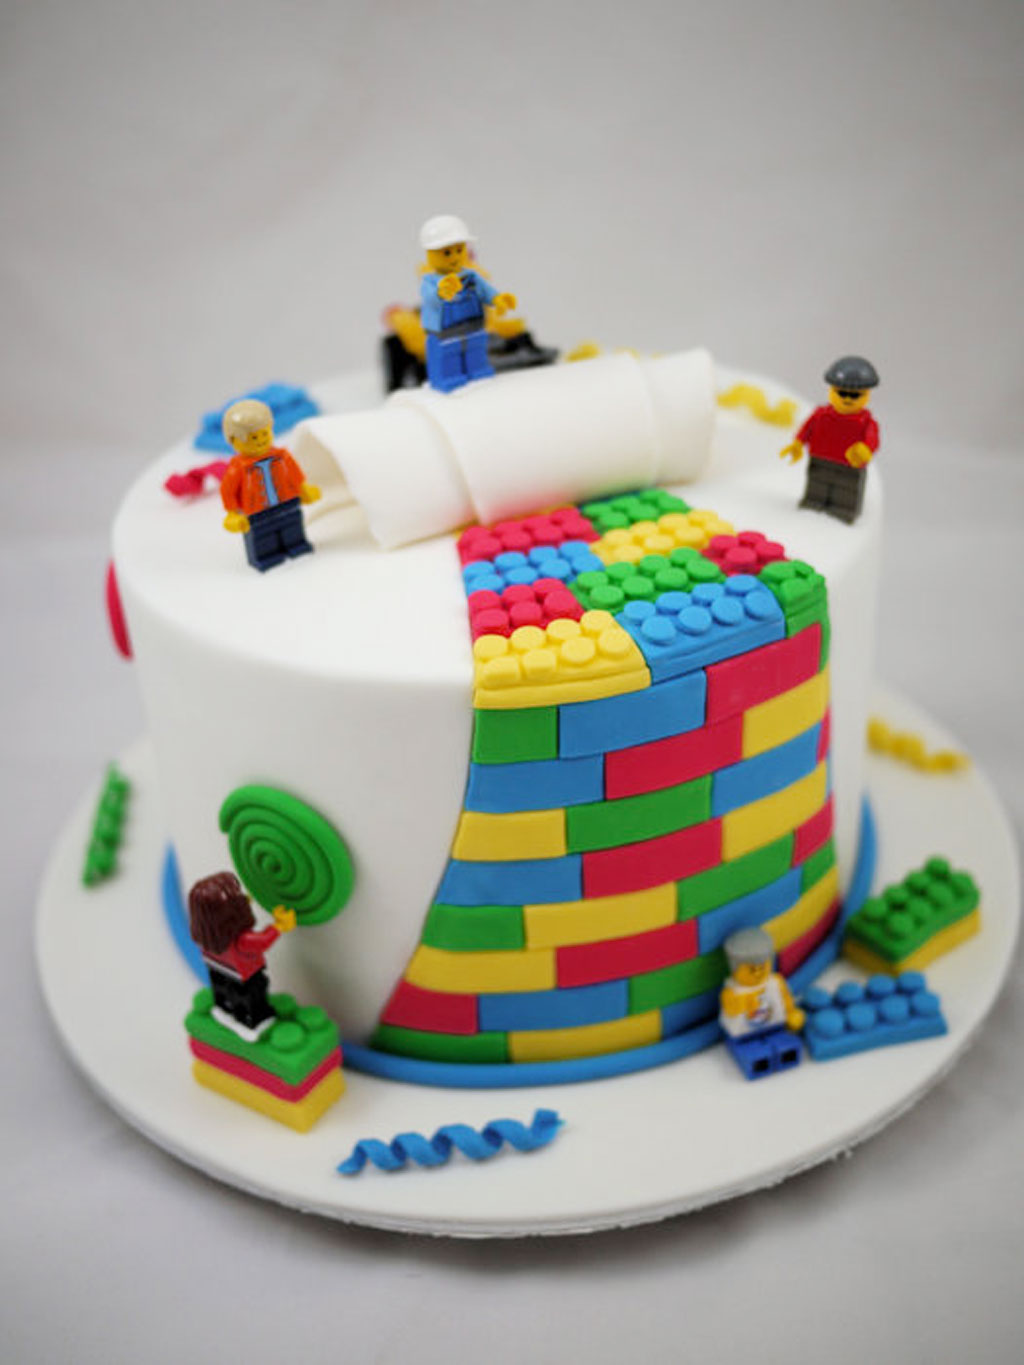 Lego Birthday Cake Decorating Birthday Cake - Cake Ideas ...